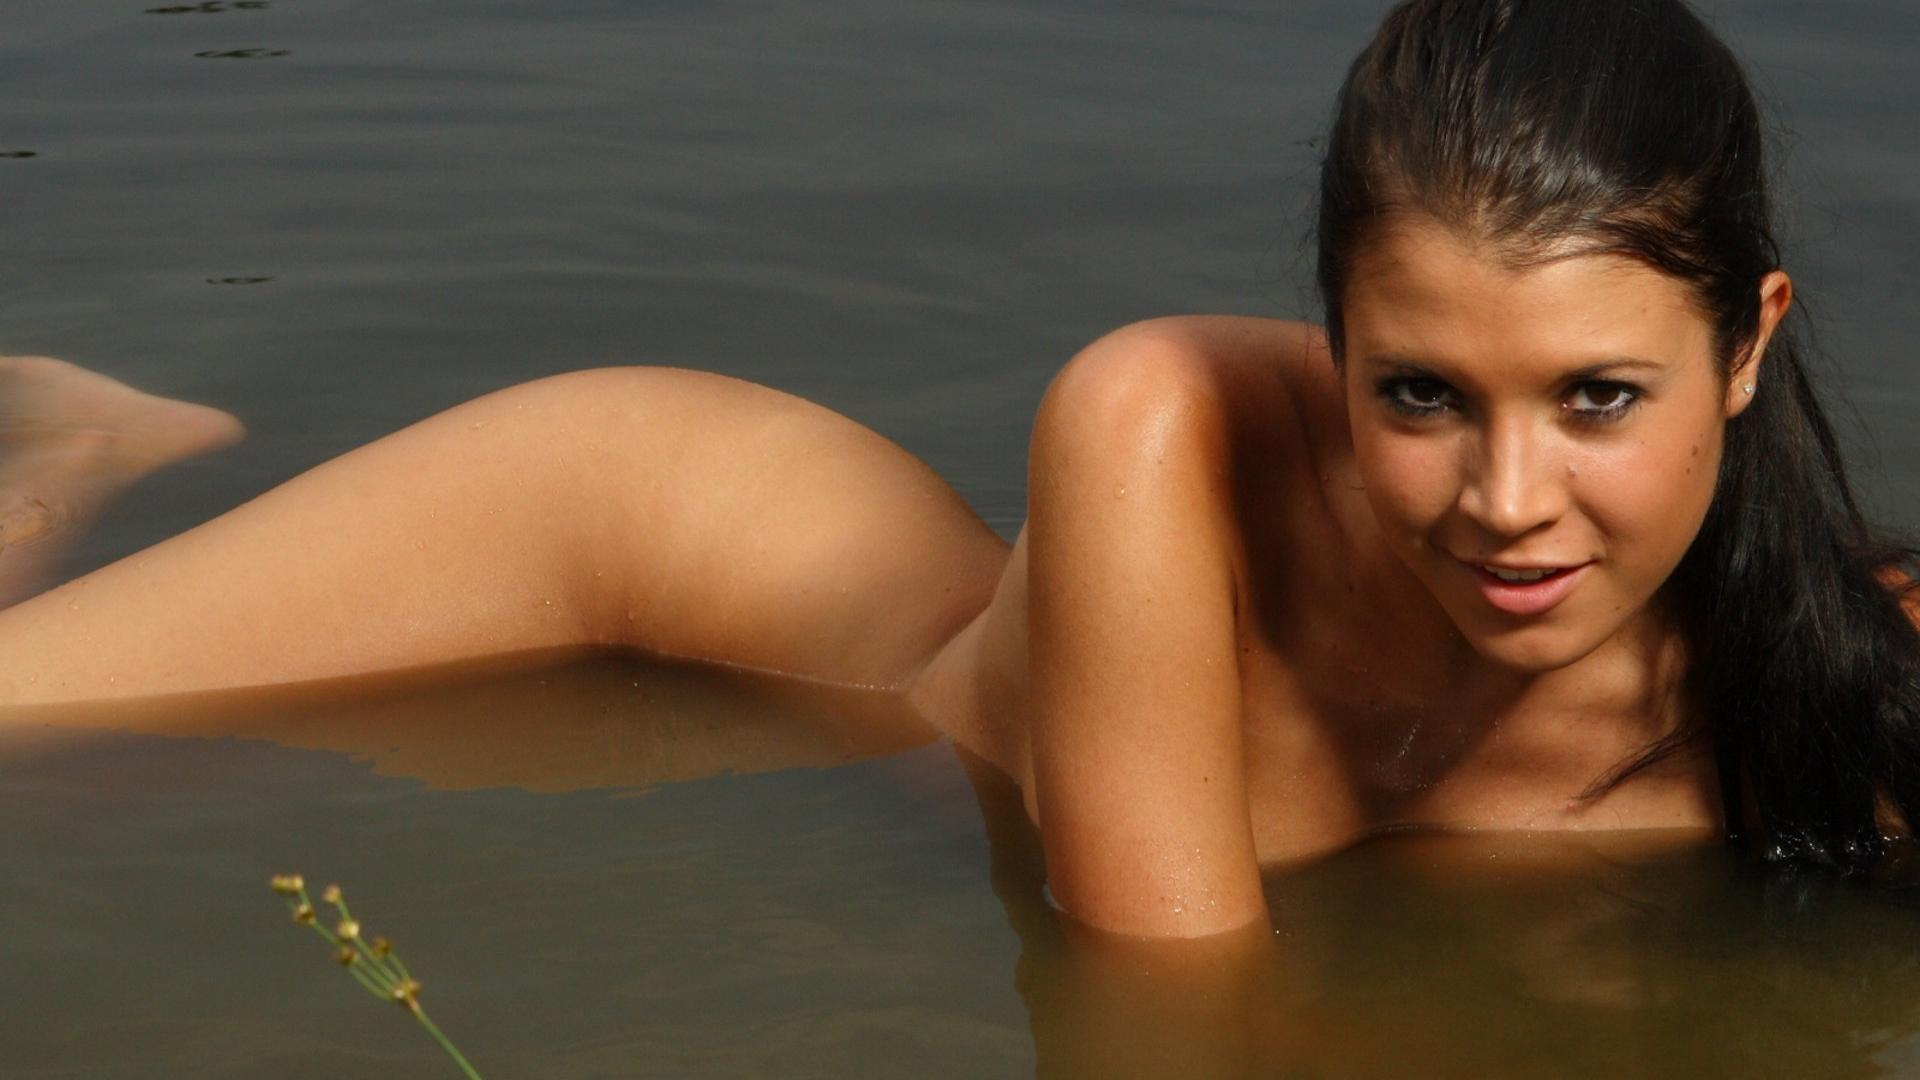 Brittany marie model nude